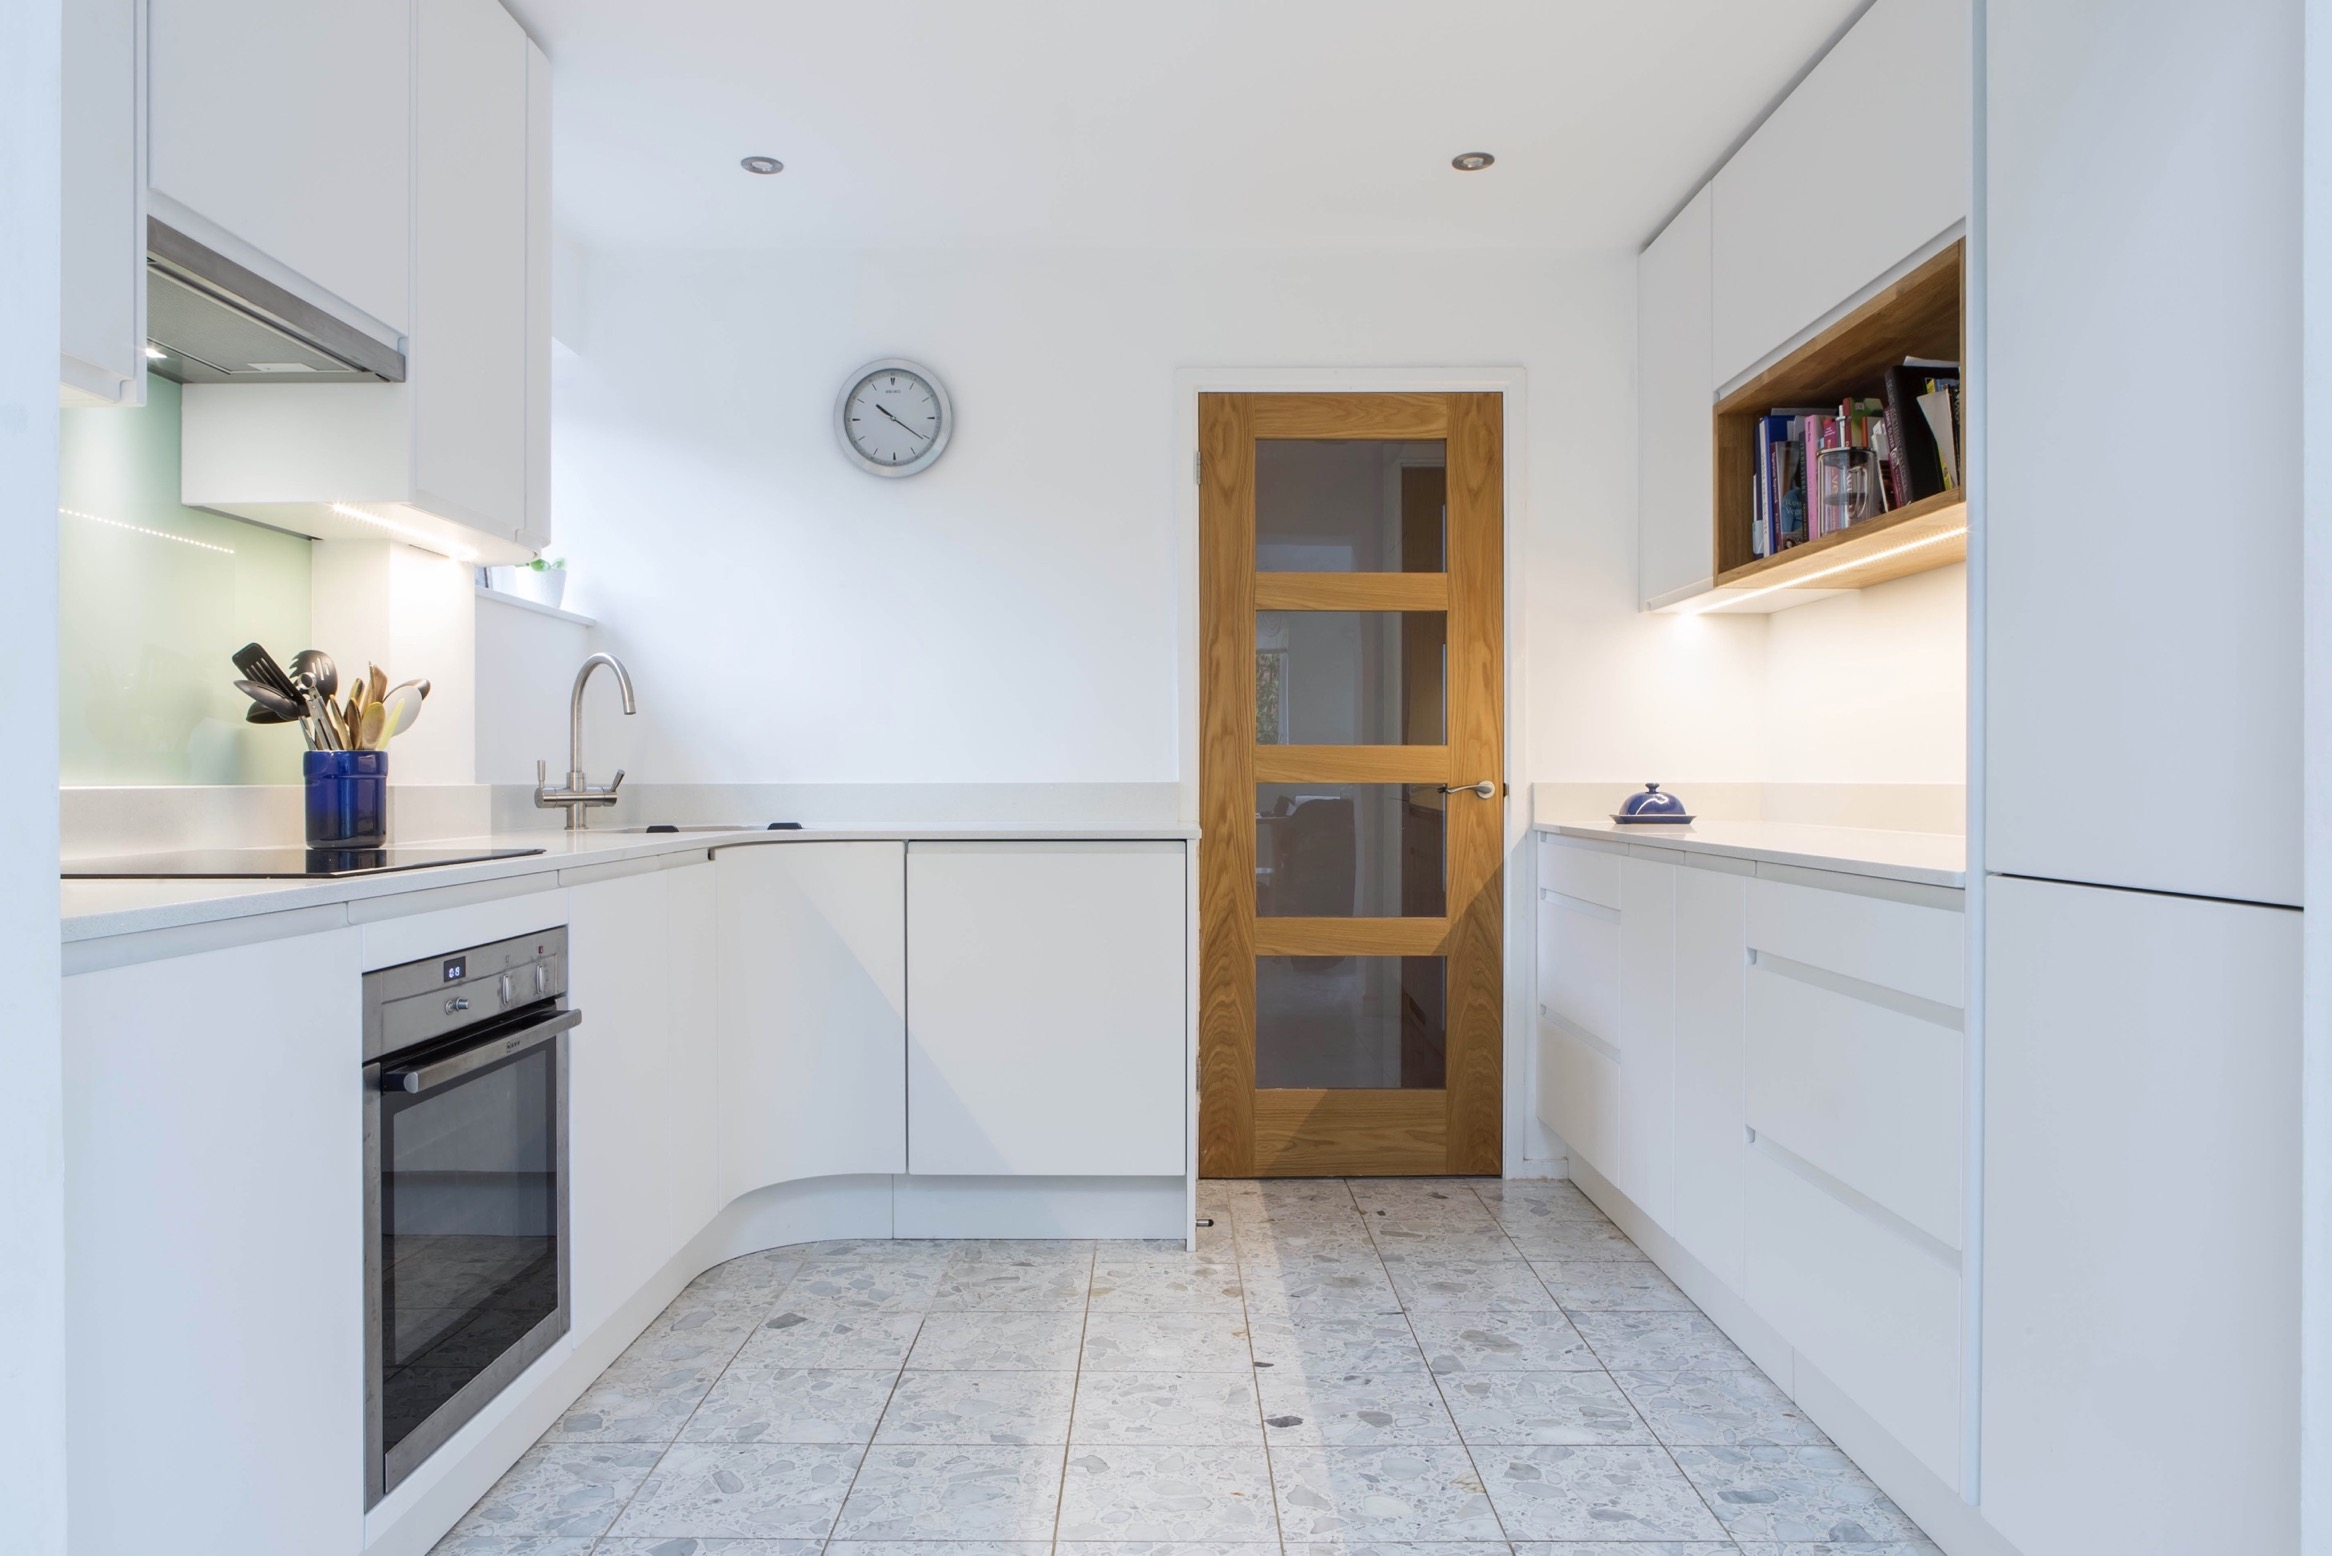 white handleless induction hob under cupboard lights oxford curved door thame bespoke kitchen 2